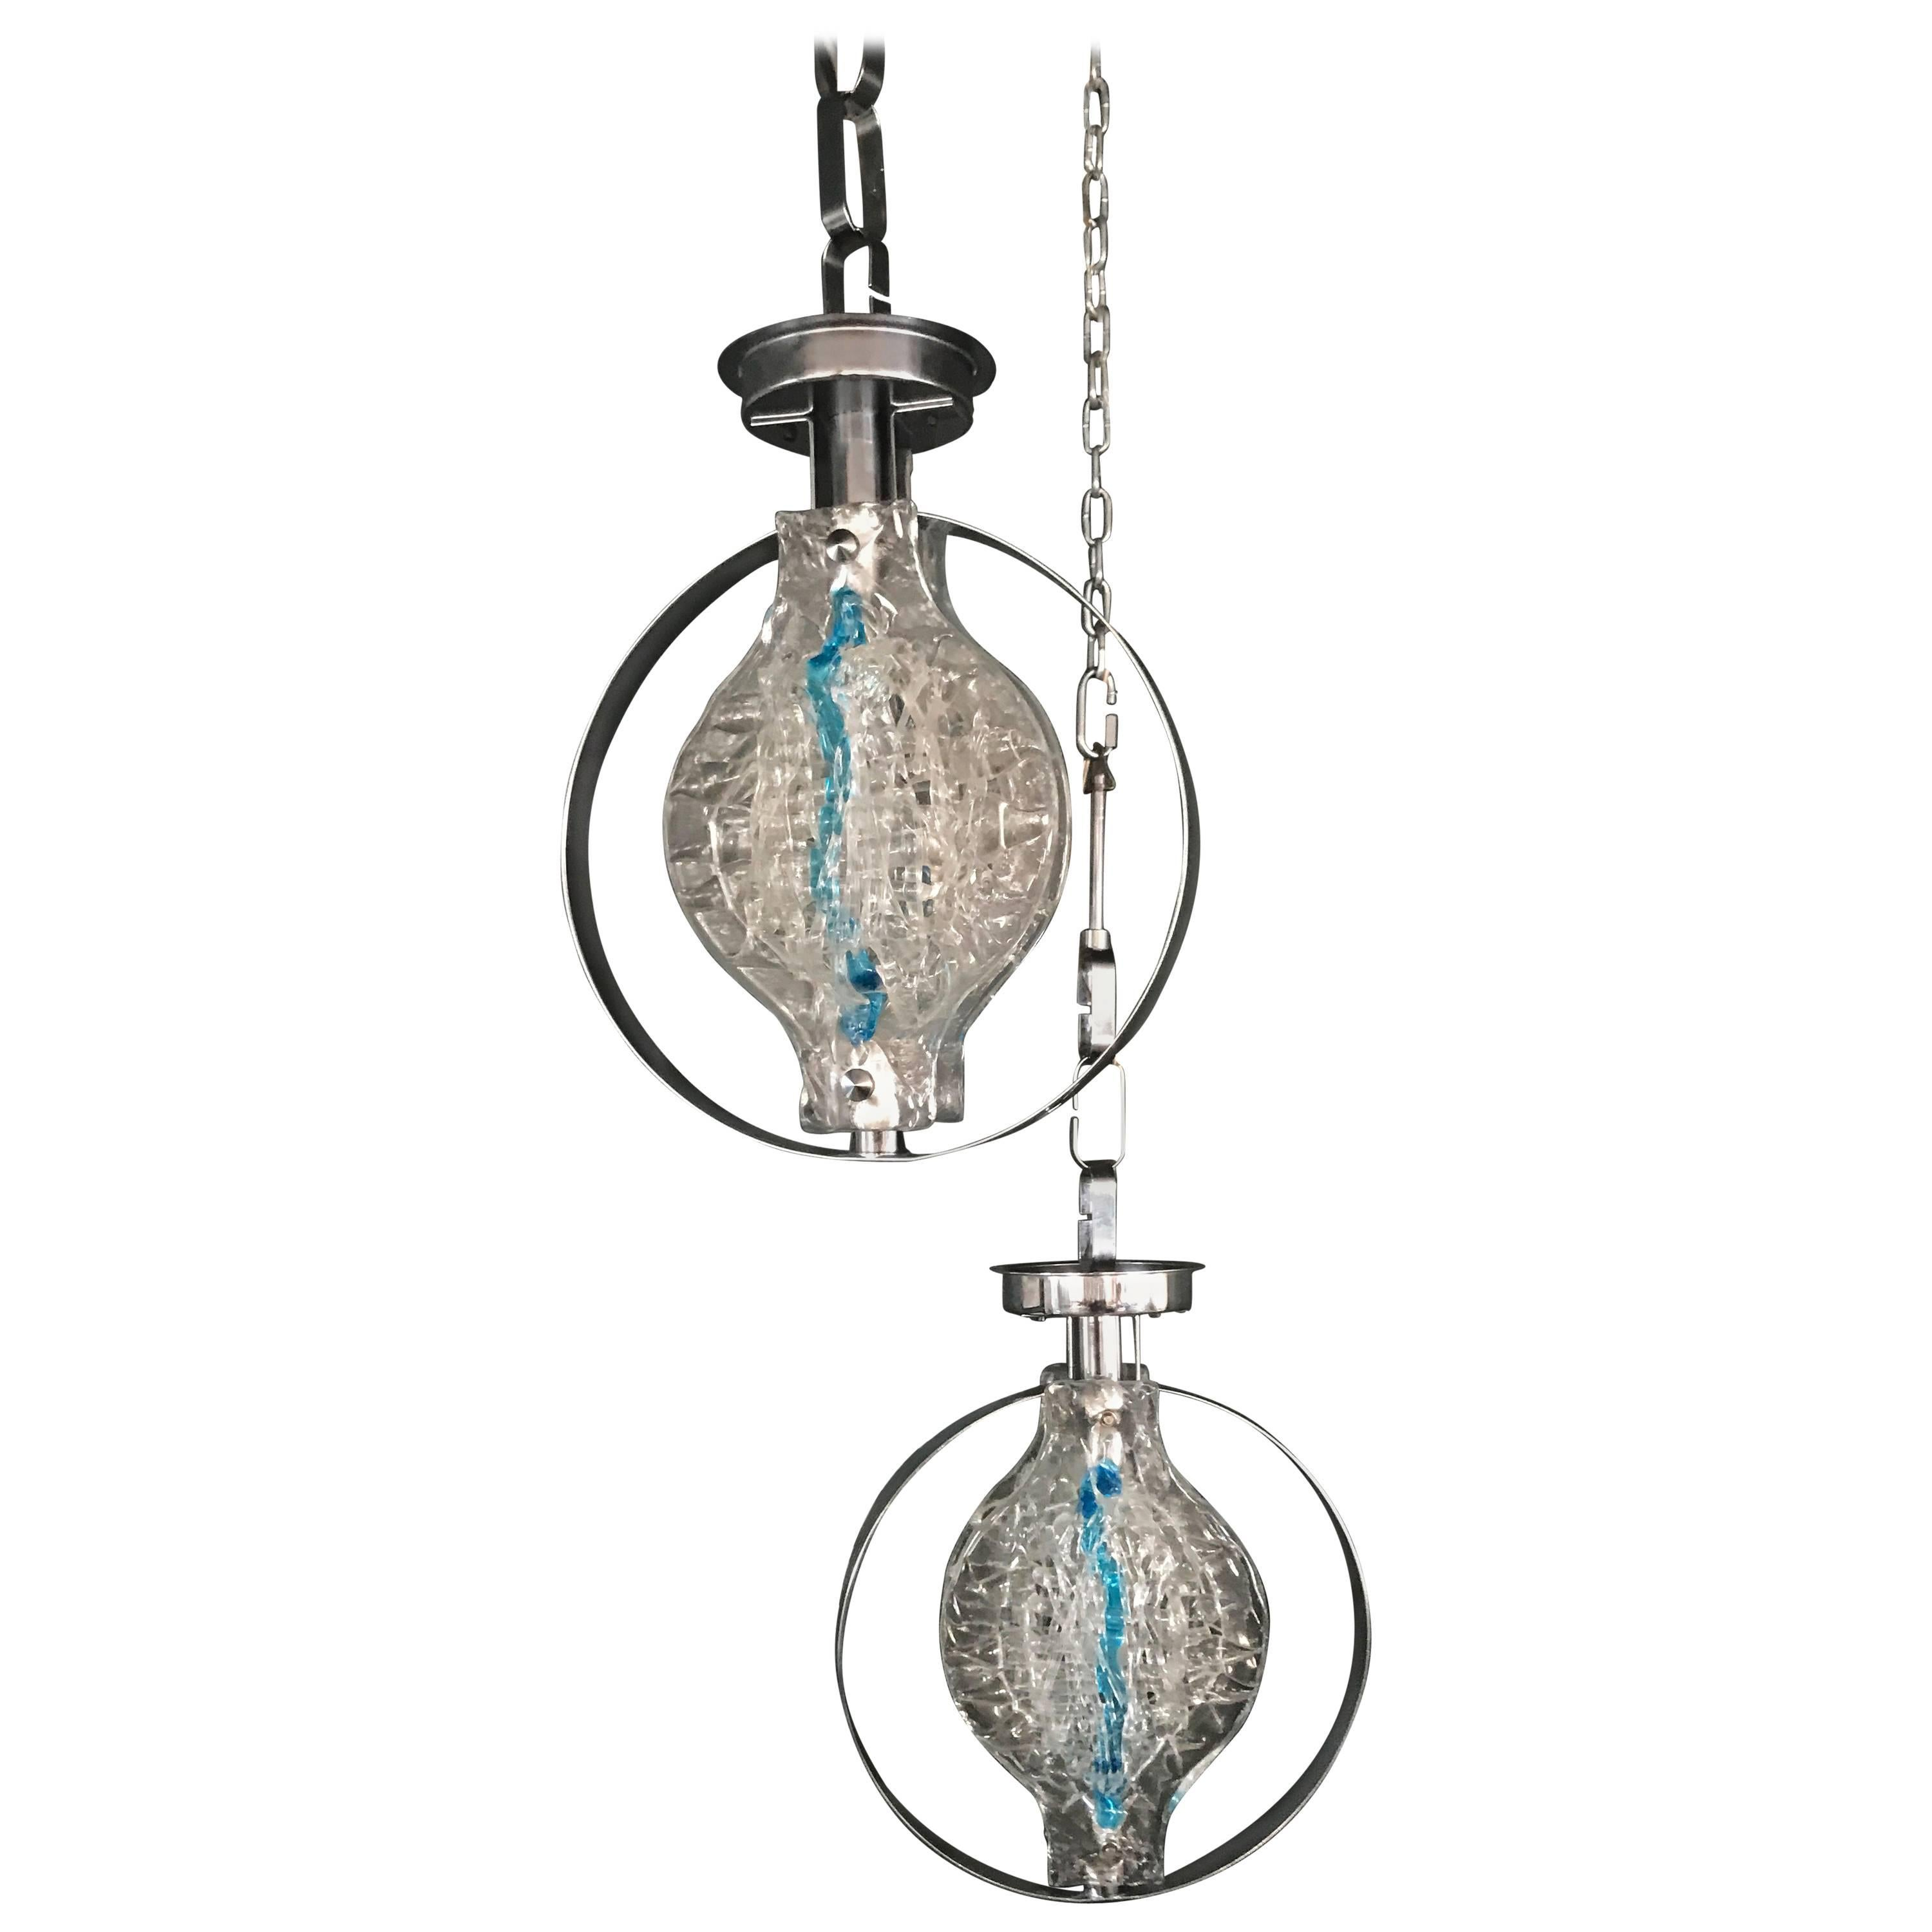 Pair of Pendant Lights by Angelo Brotto for Esperia